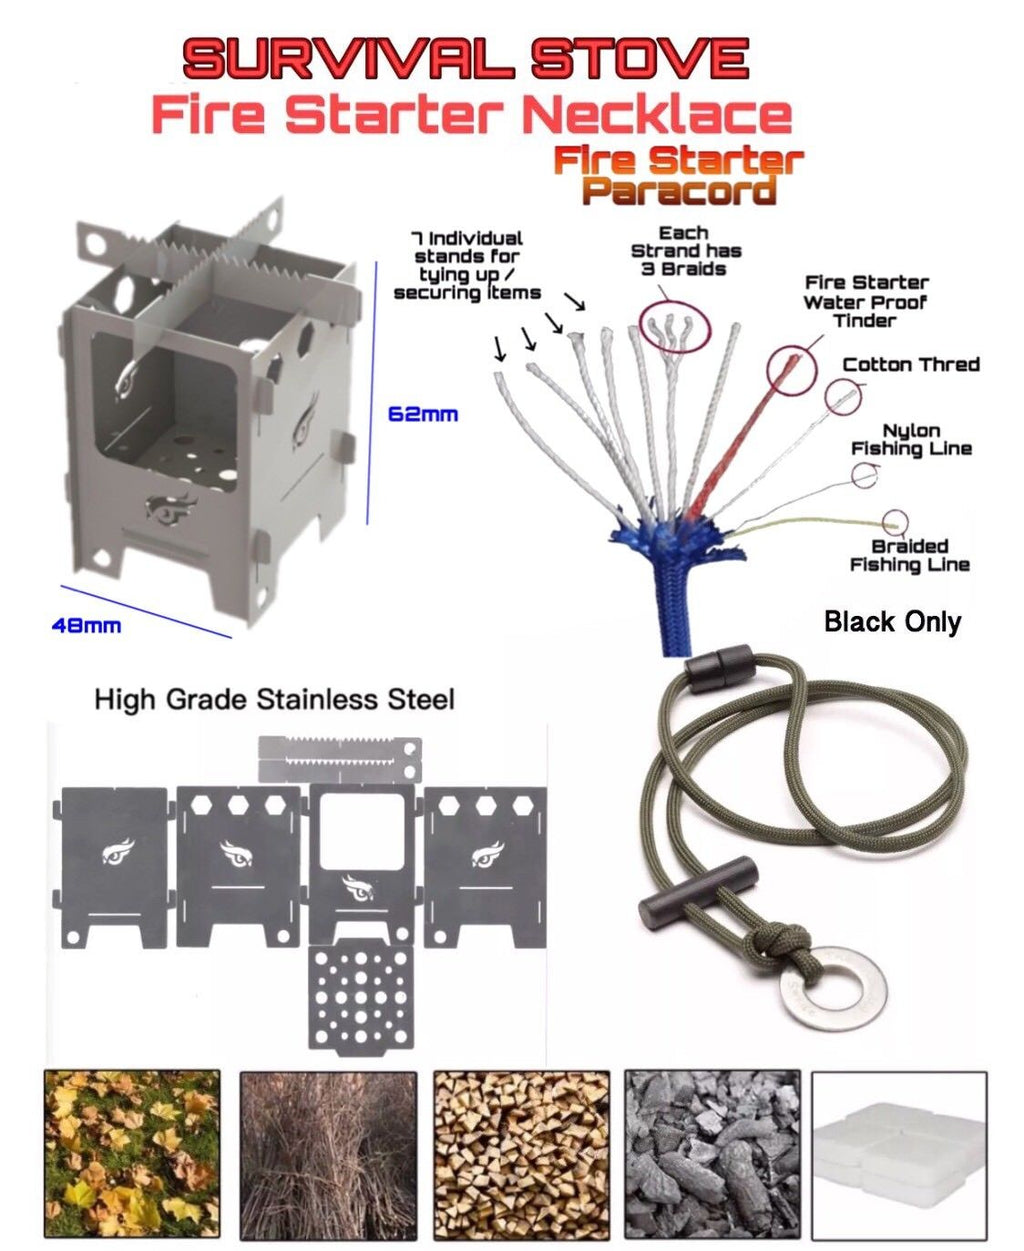 Survival Dual Fuel Camping Fishing Stove with 11 Strand Fire Starter Necklace - Outback Tactical